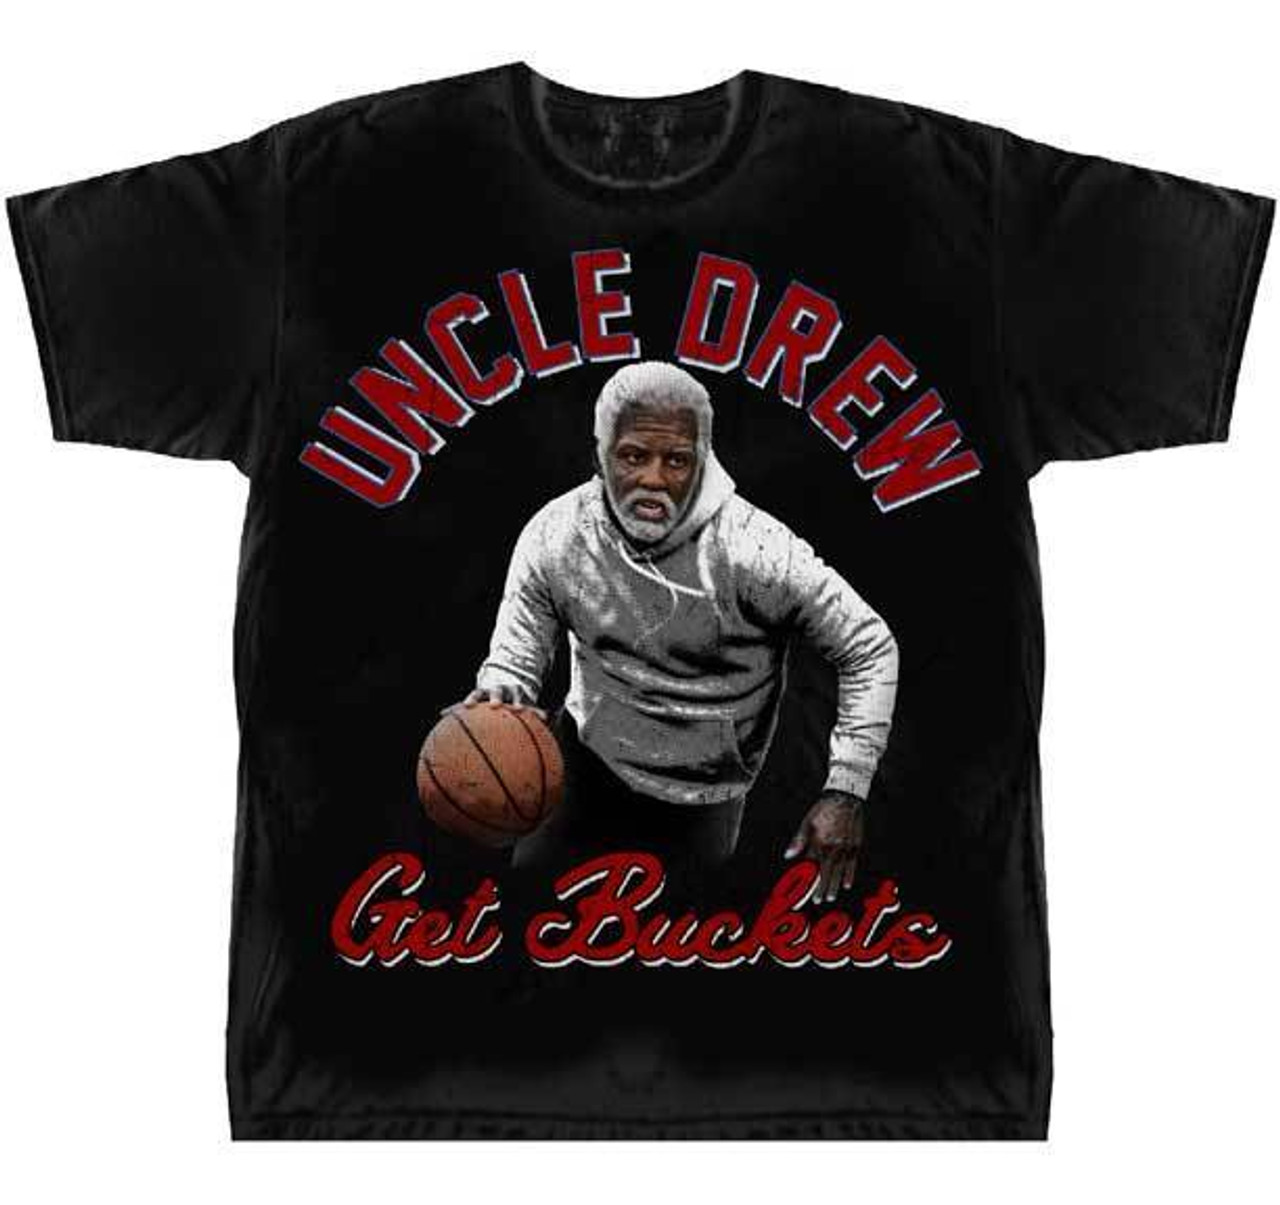 984bb7ef Uncle Drew Get Buckets Kyrie Irving Sports Comedy Basketball Movie T Shirt  75-1